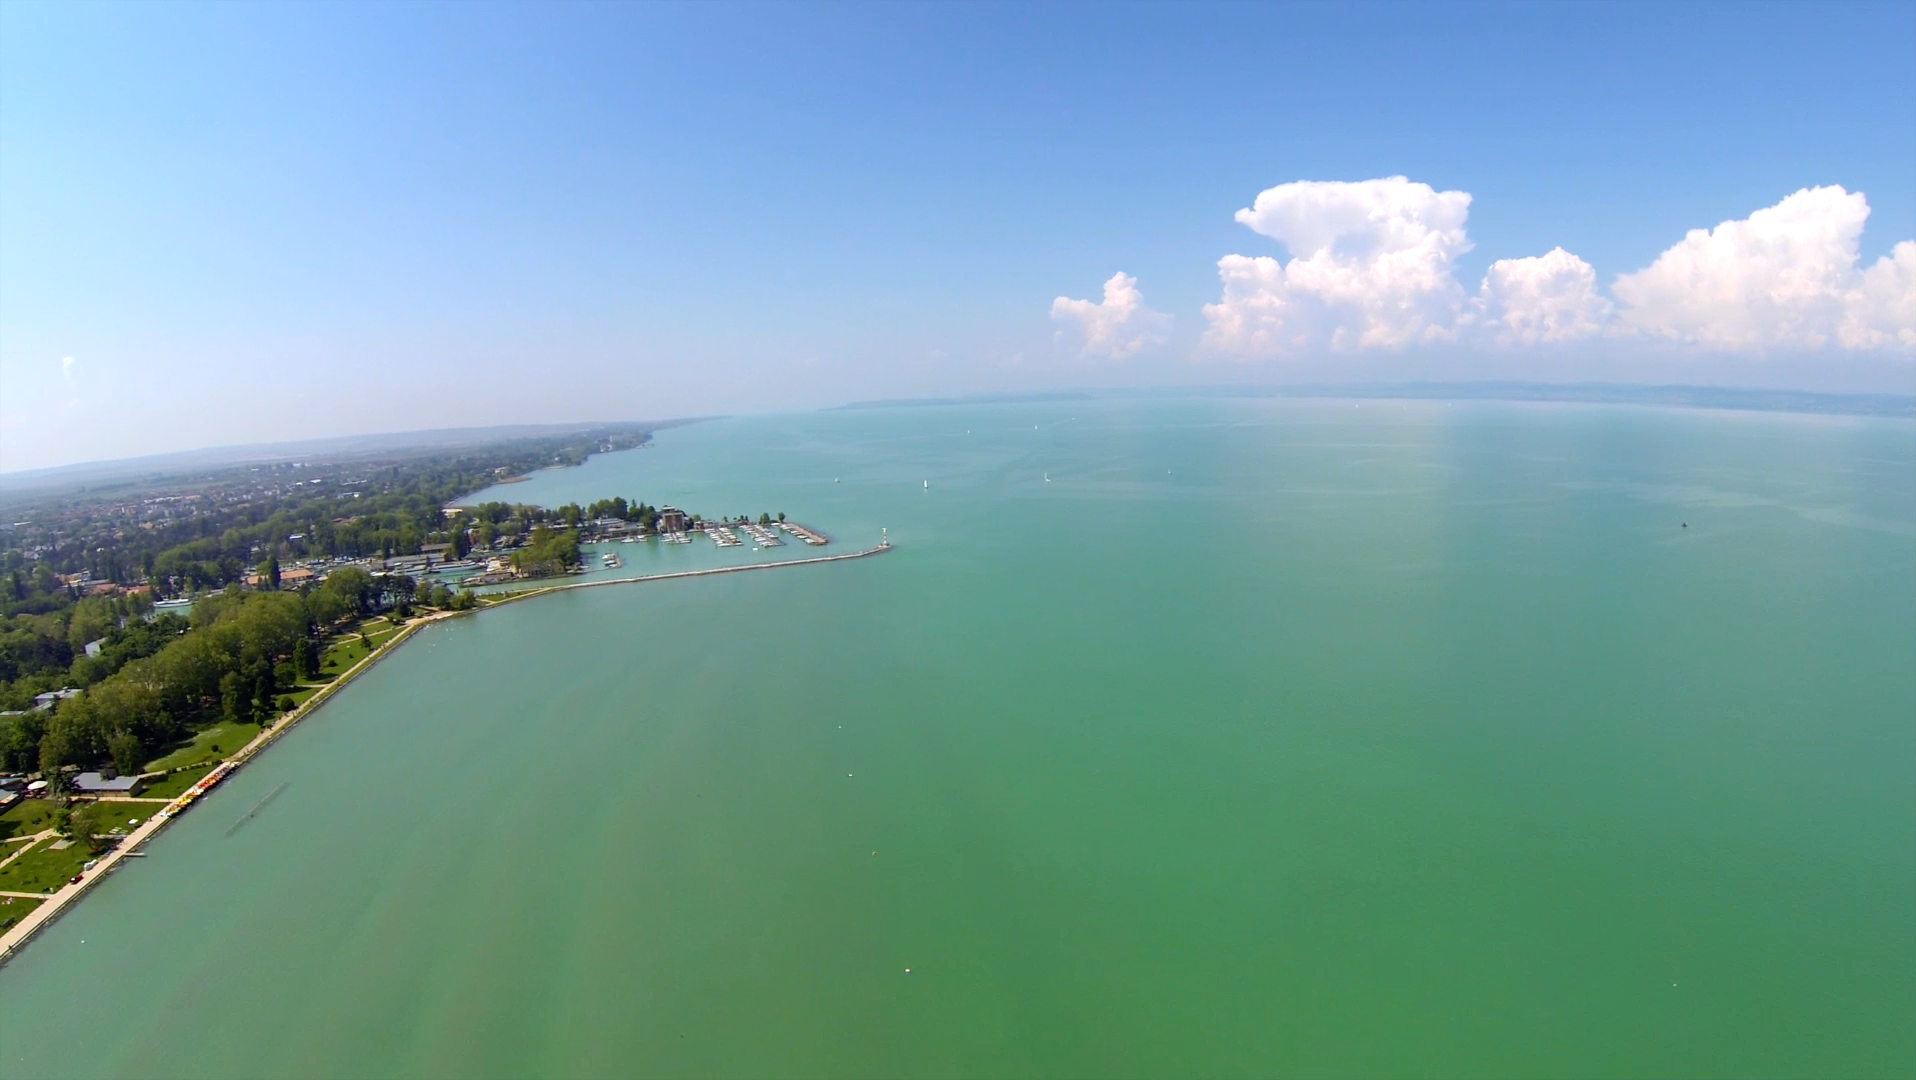 balaton single personals Lake balaton hortobágy-pusta őrség tisza lake home  news  fun things to do in budapest for couples, singles, stag do menu home things to do  kövessen minket fun things to do in budapest for couples, singles, stag do as soon as you arrive in budapest you are immediately surrounded by this unmistakable feeling that something out.